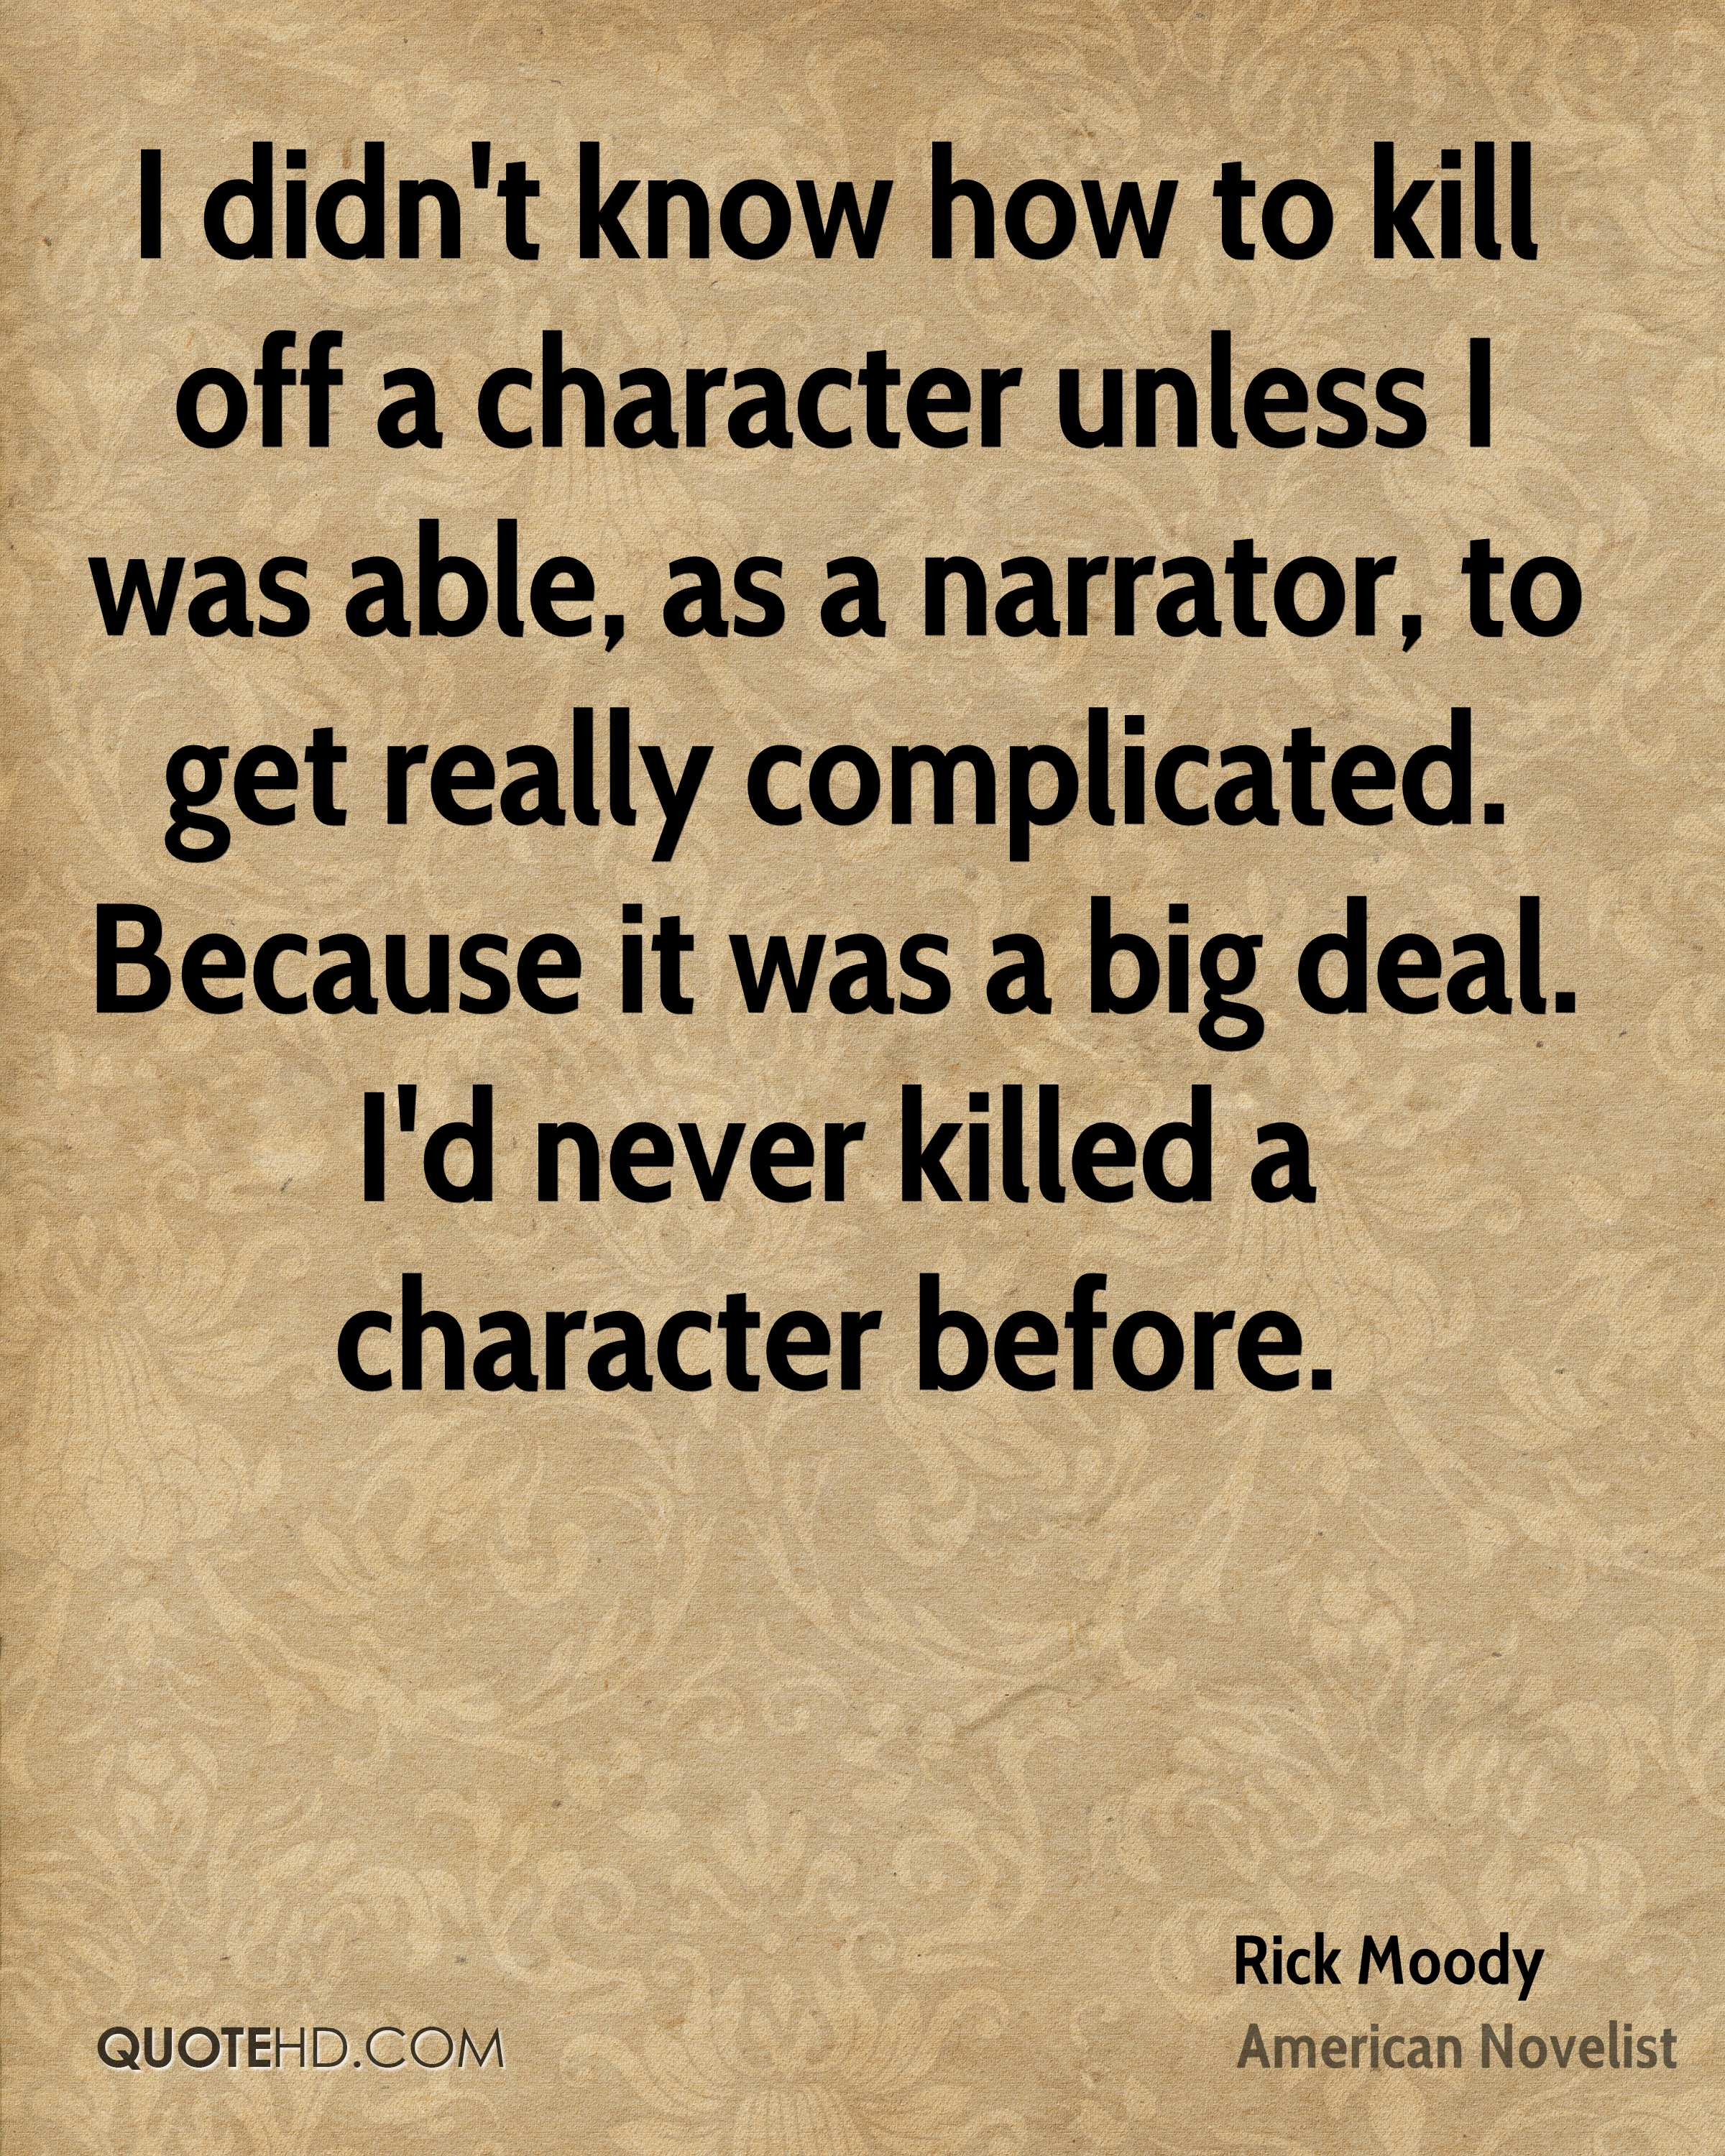 I didn't know how to kill off a character unless I was able, as a narrator, to get really complicated. Because it was a big deal. I'd never killed a character before.